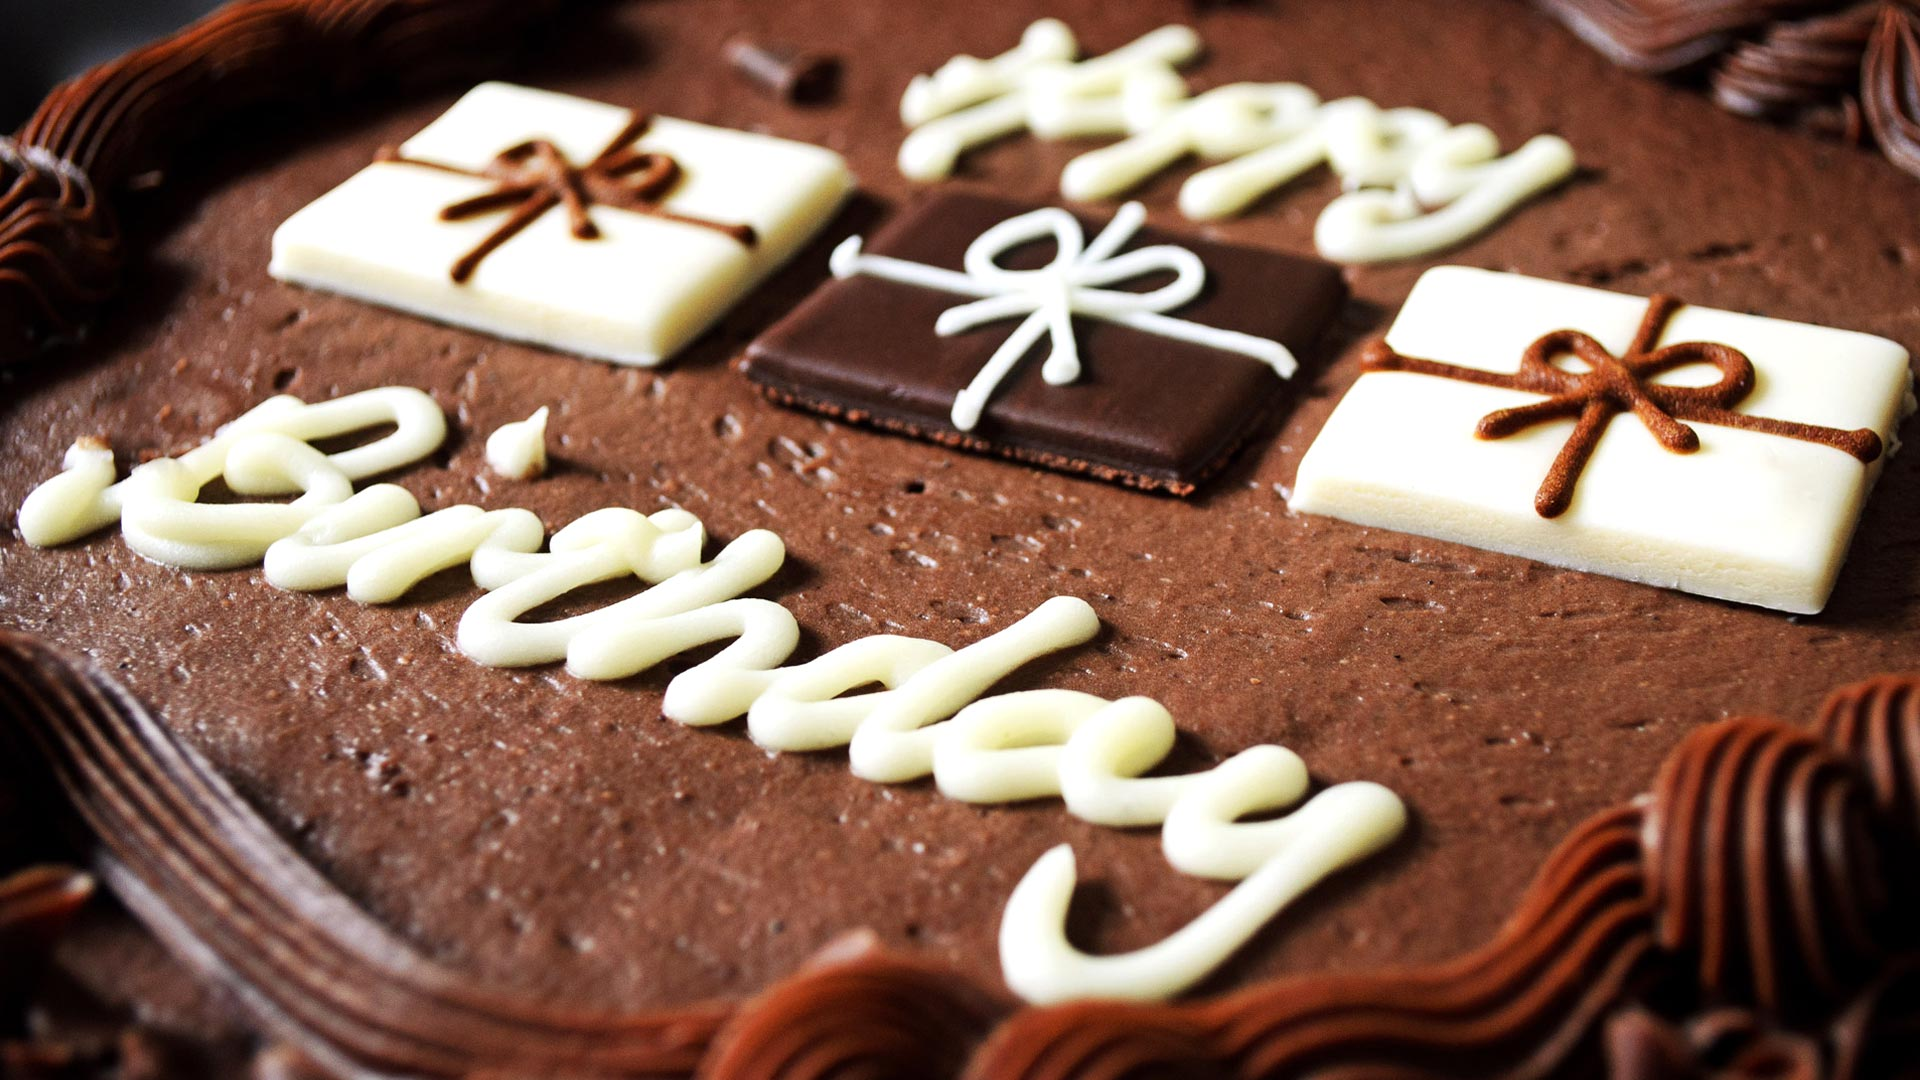 wallpaper kek birthday ; Happy-birthday-chocolate-cake-wallpaper-HD-desktop